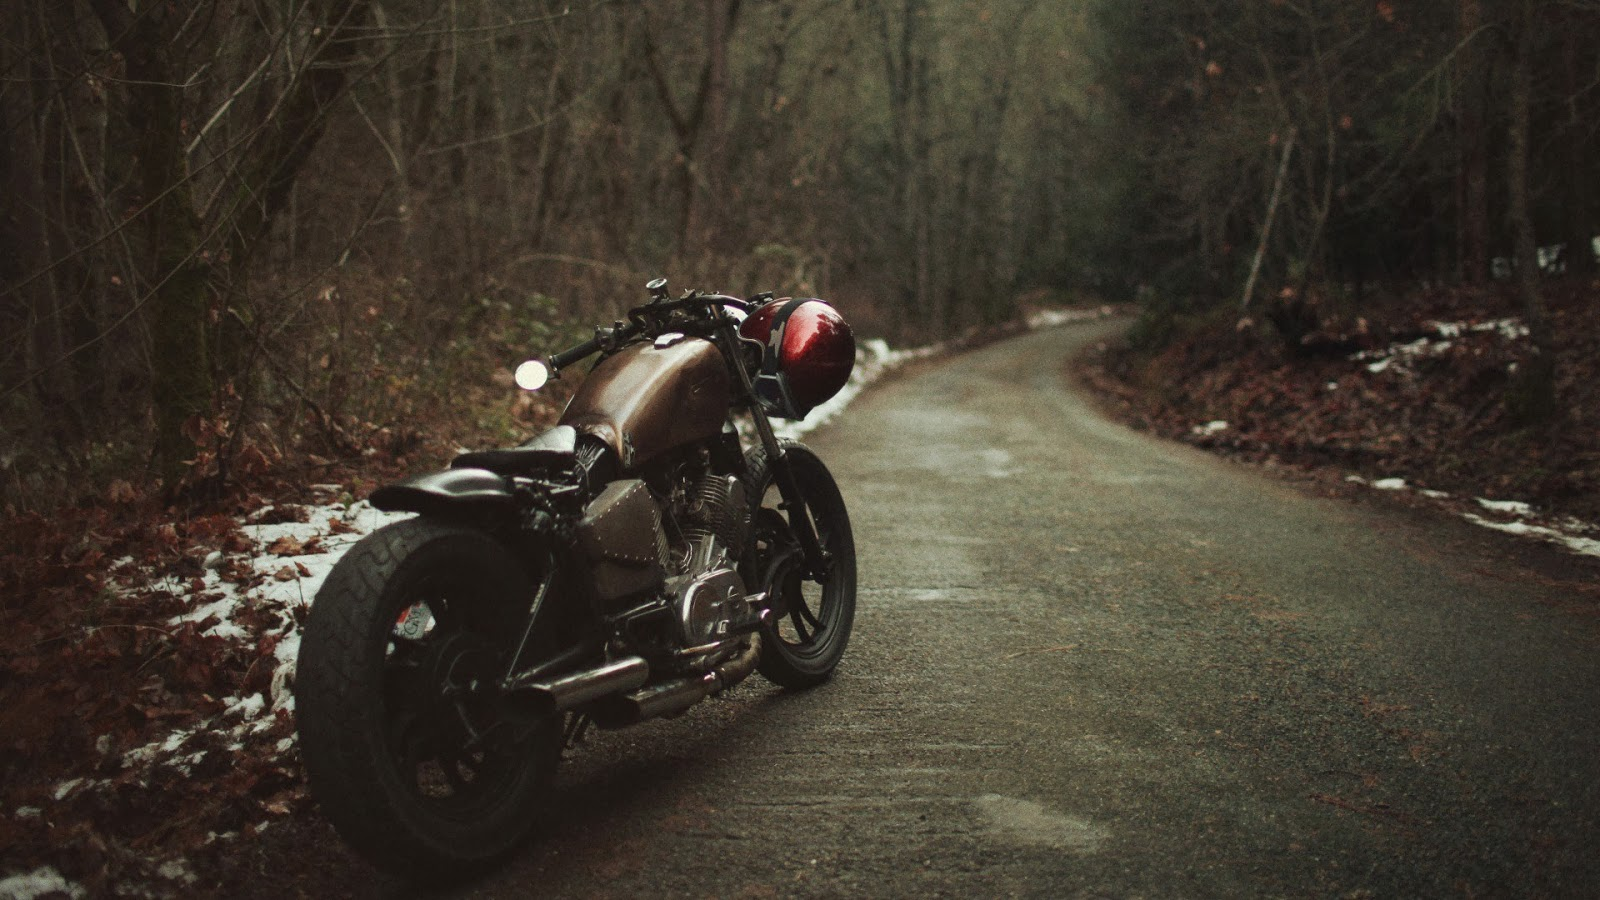 Heavy Bikes And Cars Wallpapers Free Download Amazing Super Hd Bike Wallpapers Image Wallpapers